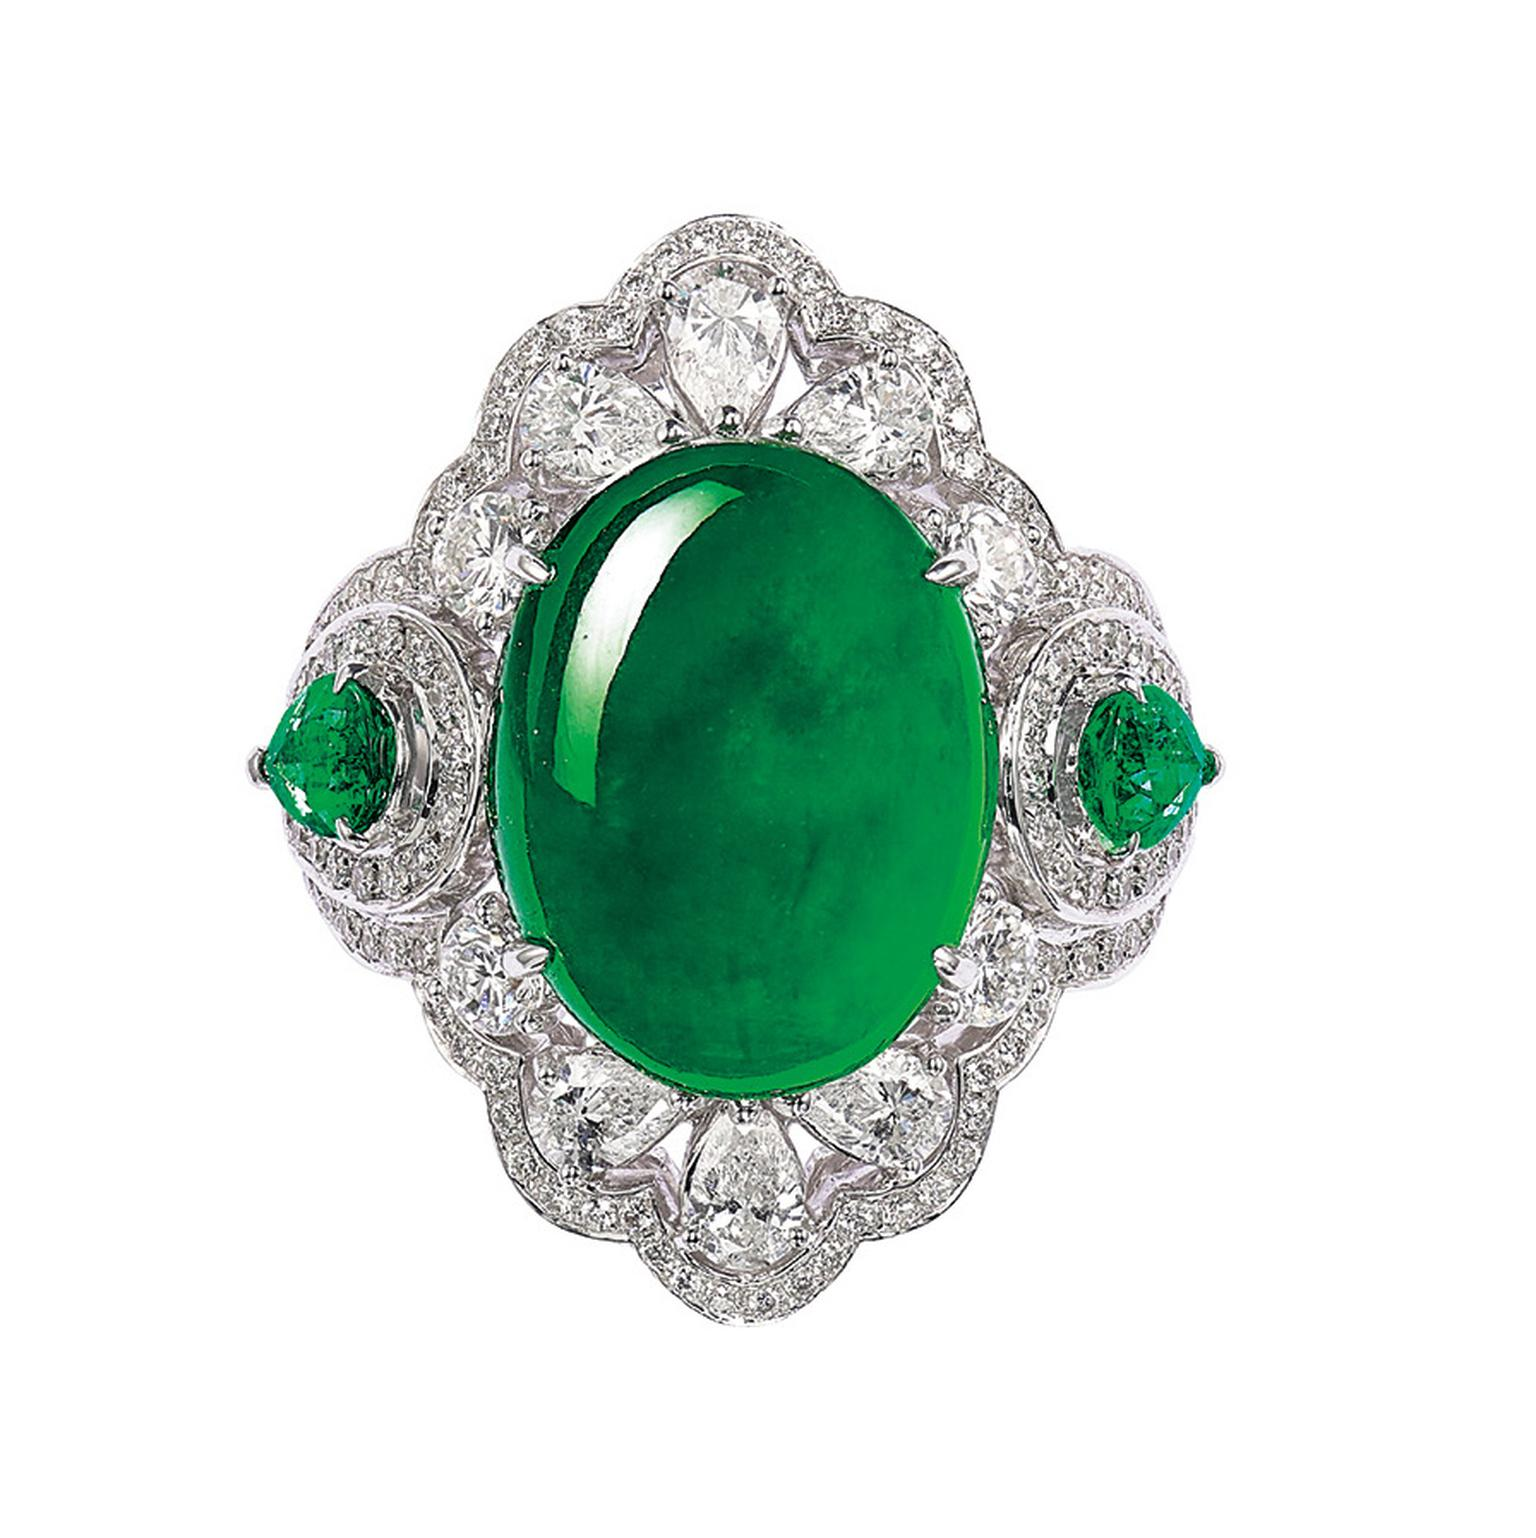 Lot 581 Jadeite Emerald and diamond ring for Phillips